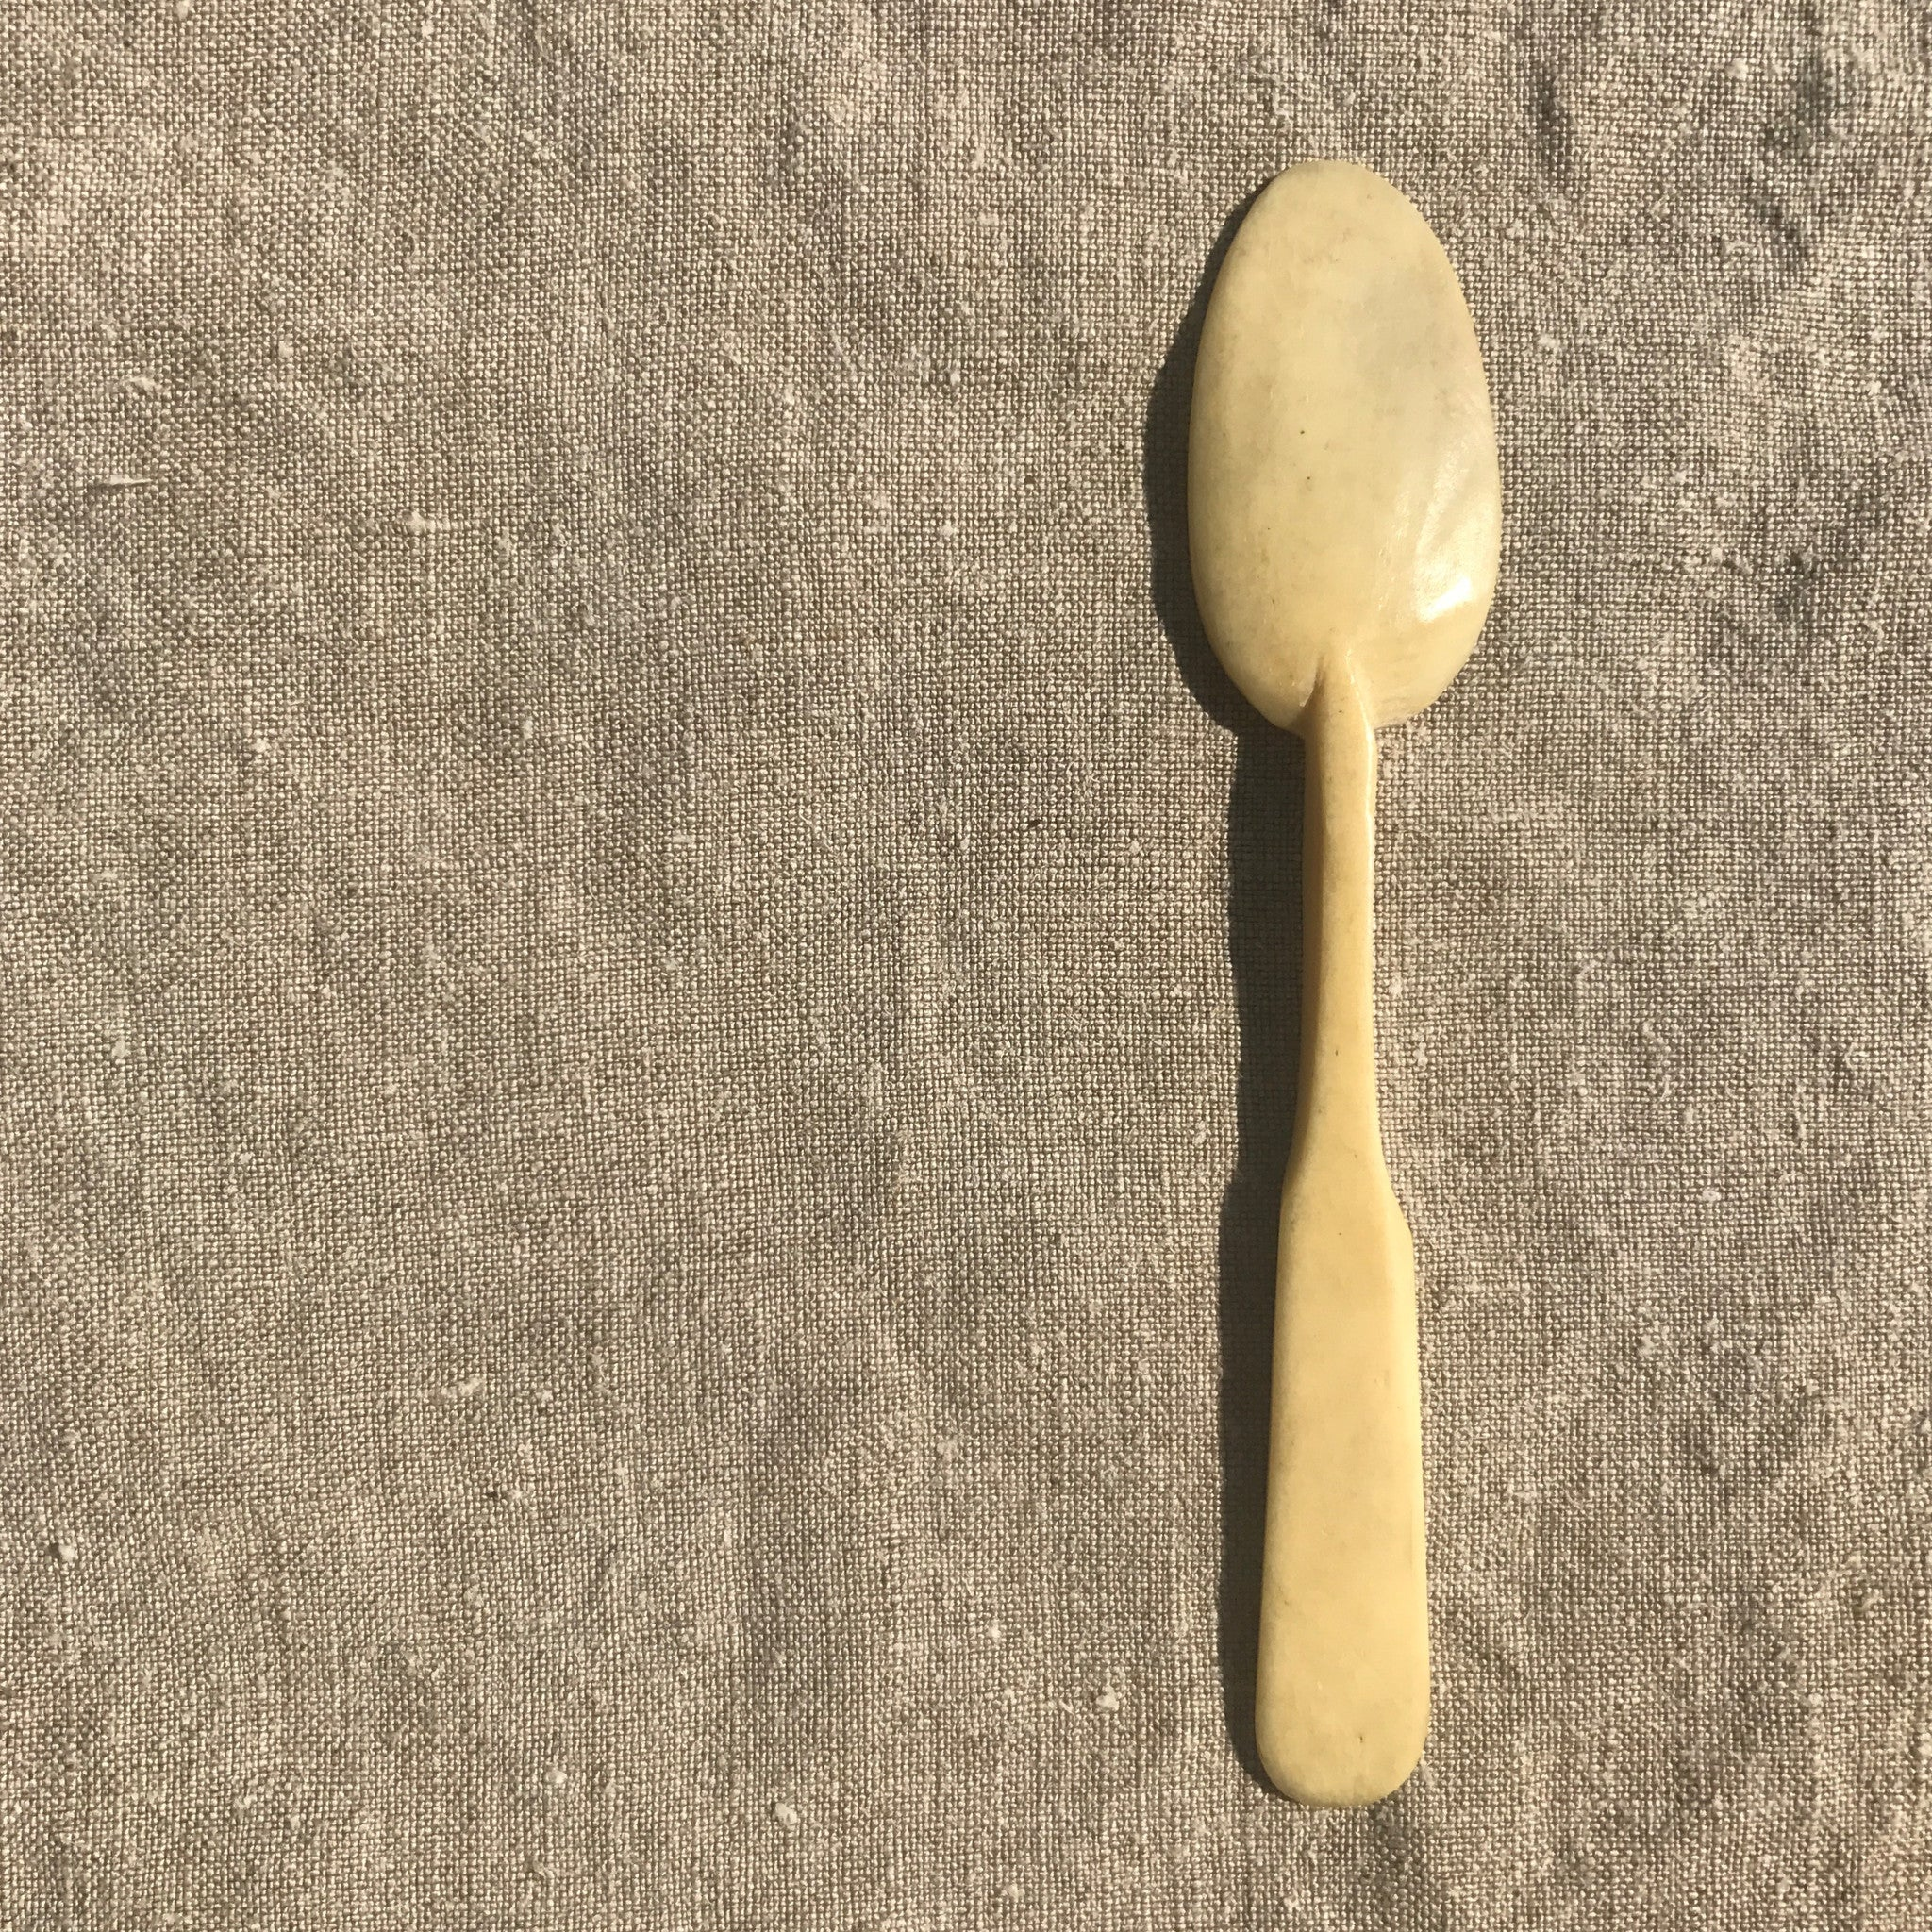 seaman's caviar spoon (4 of 7)